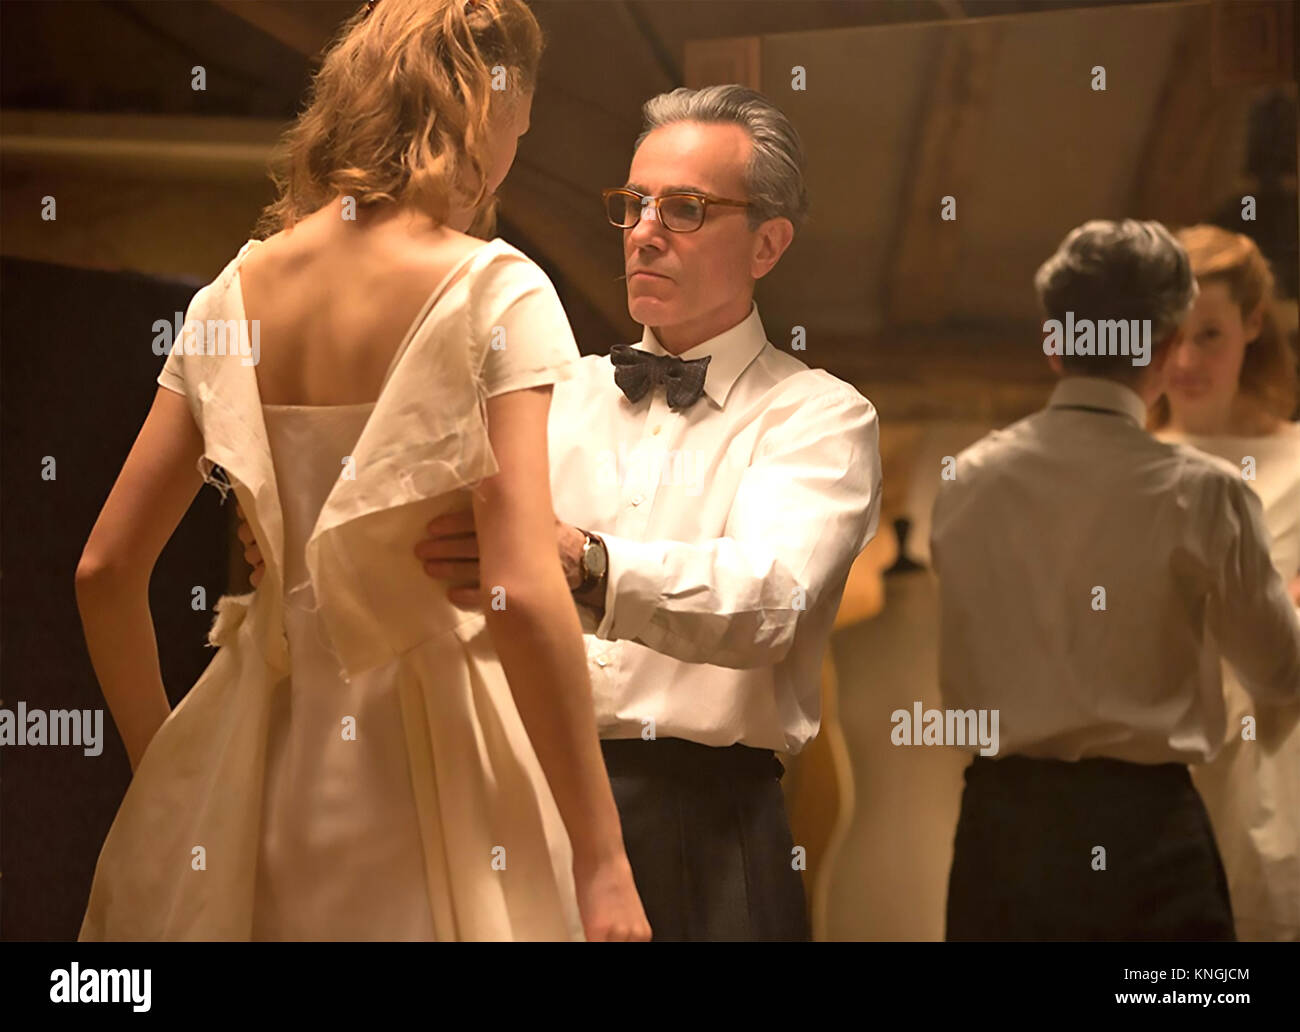 PHANTOM THREAD 2018 Focus Features film with Vicky Krieps and Daniel Day-Lewis - Stock Image